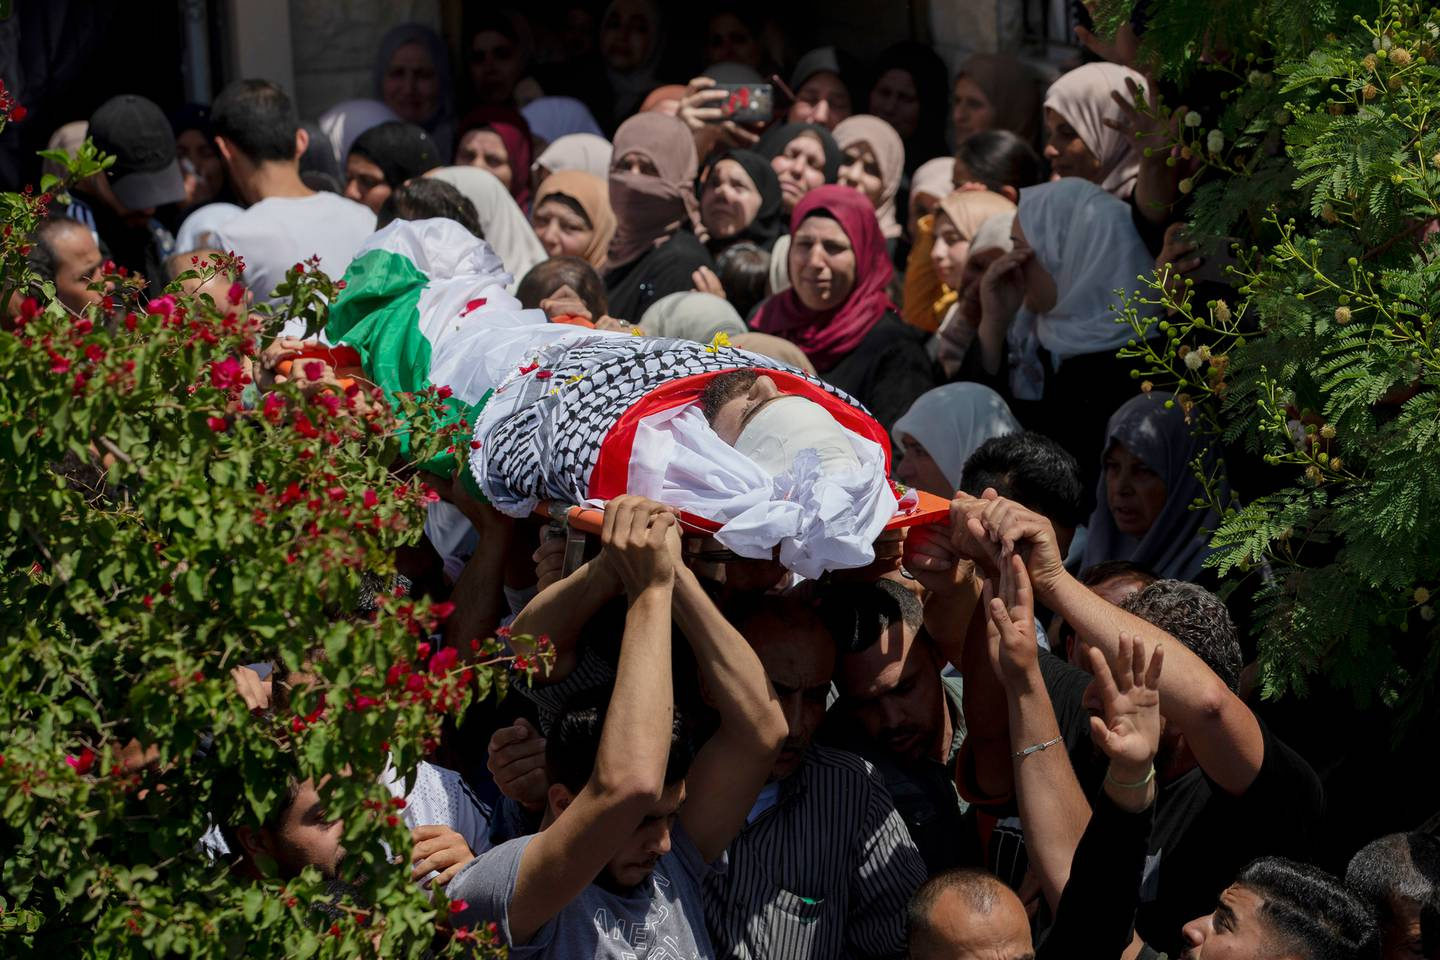 Palestinian mourners carry body of their loved one who was killed in clashes with Israeli forces. Photo / AP